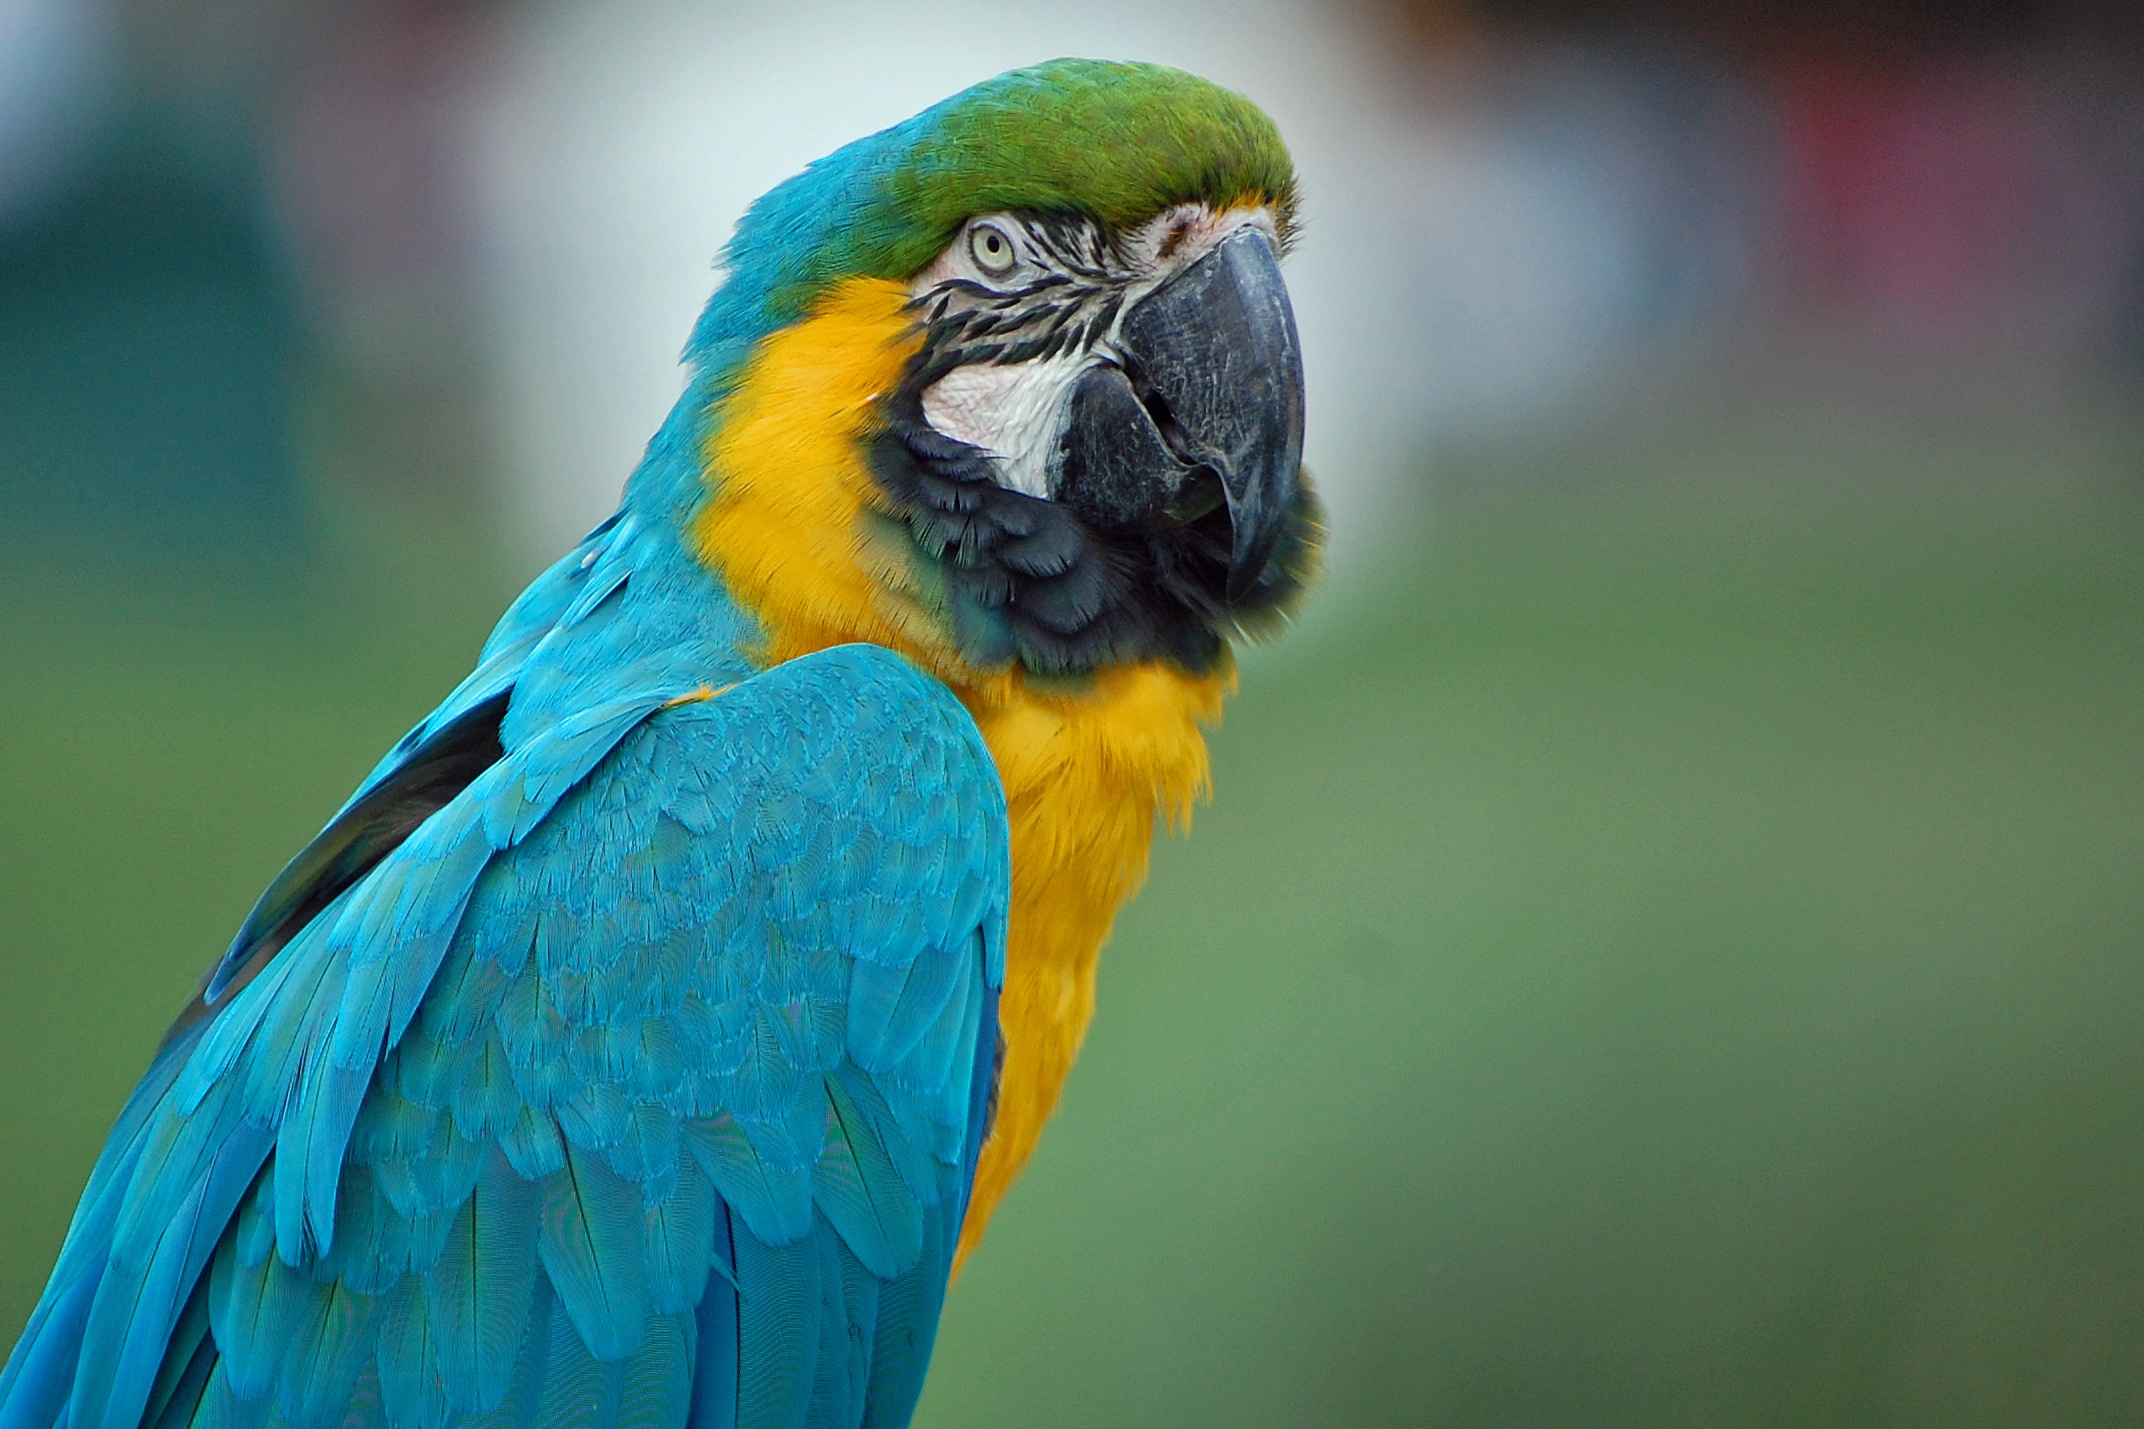 126813 download wallpaper Animals, Parrots, Macaw, Color, Feather screensavers and pictures for free